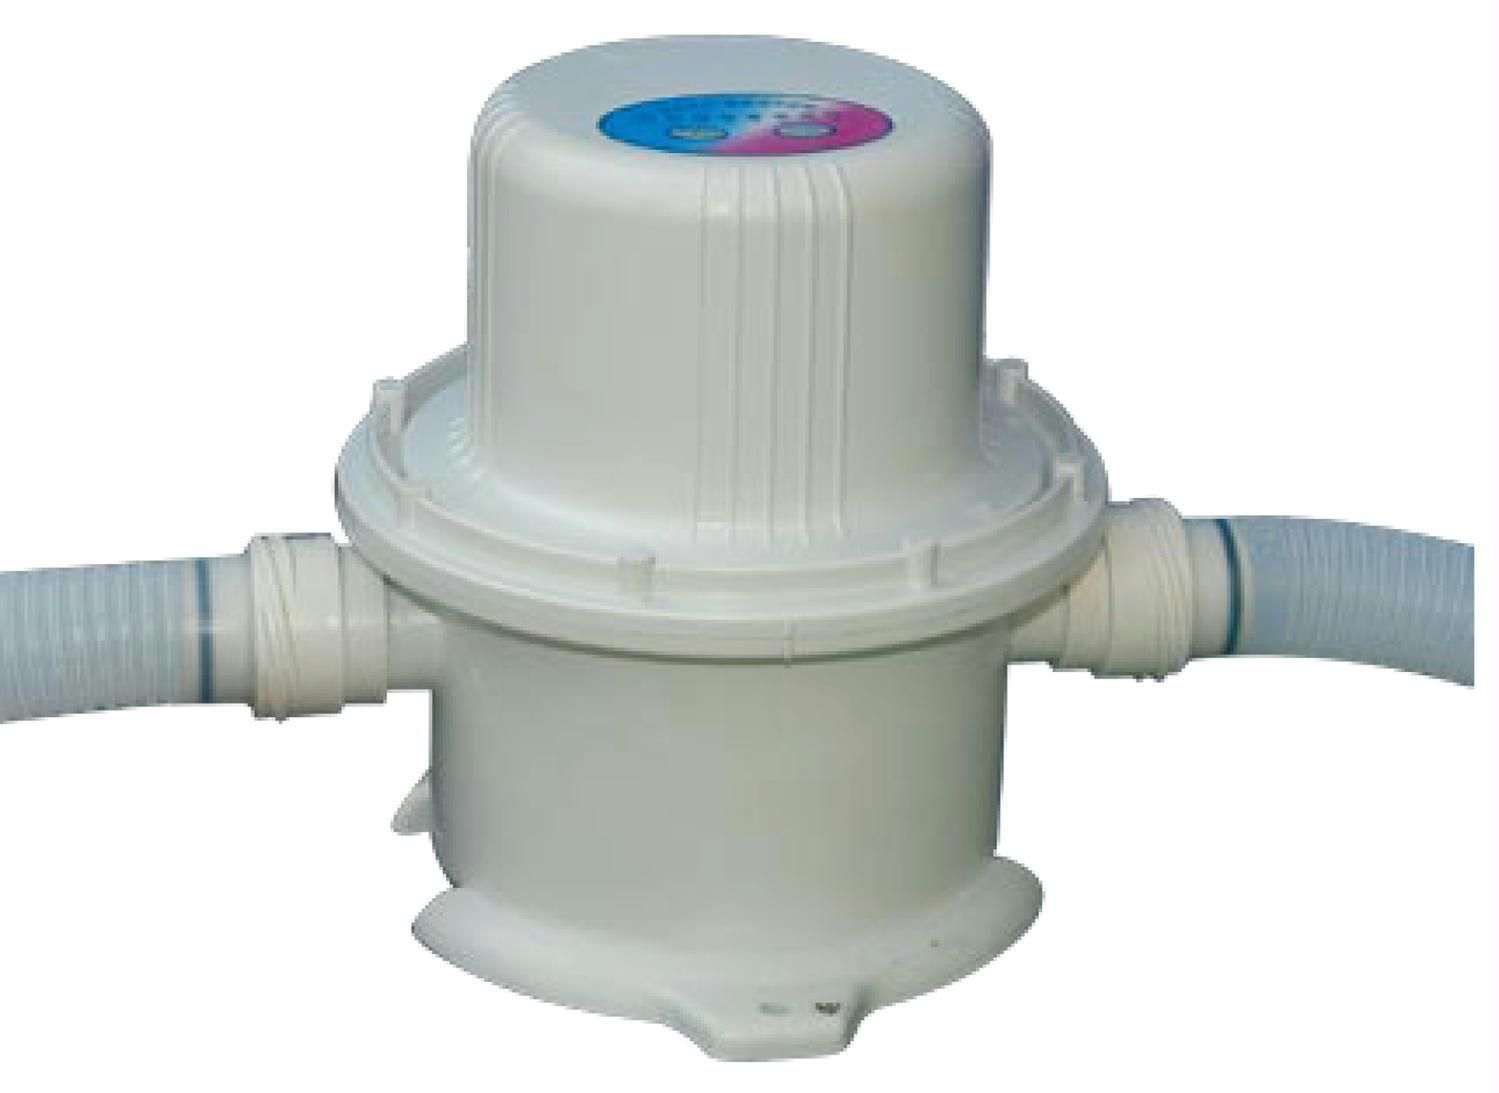 220 240 Volt White Above Ground Swimming Pool And Spa Heater Pump Swimming Pool Heaters Above Ground Swimming Pools Spa Heater